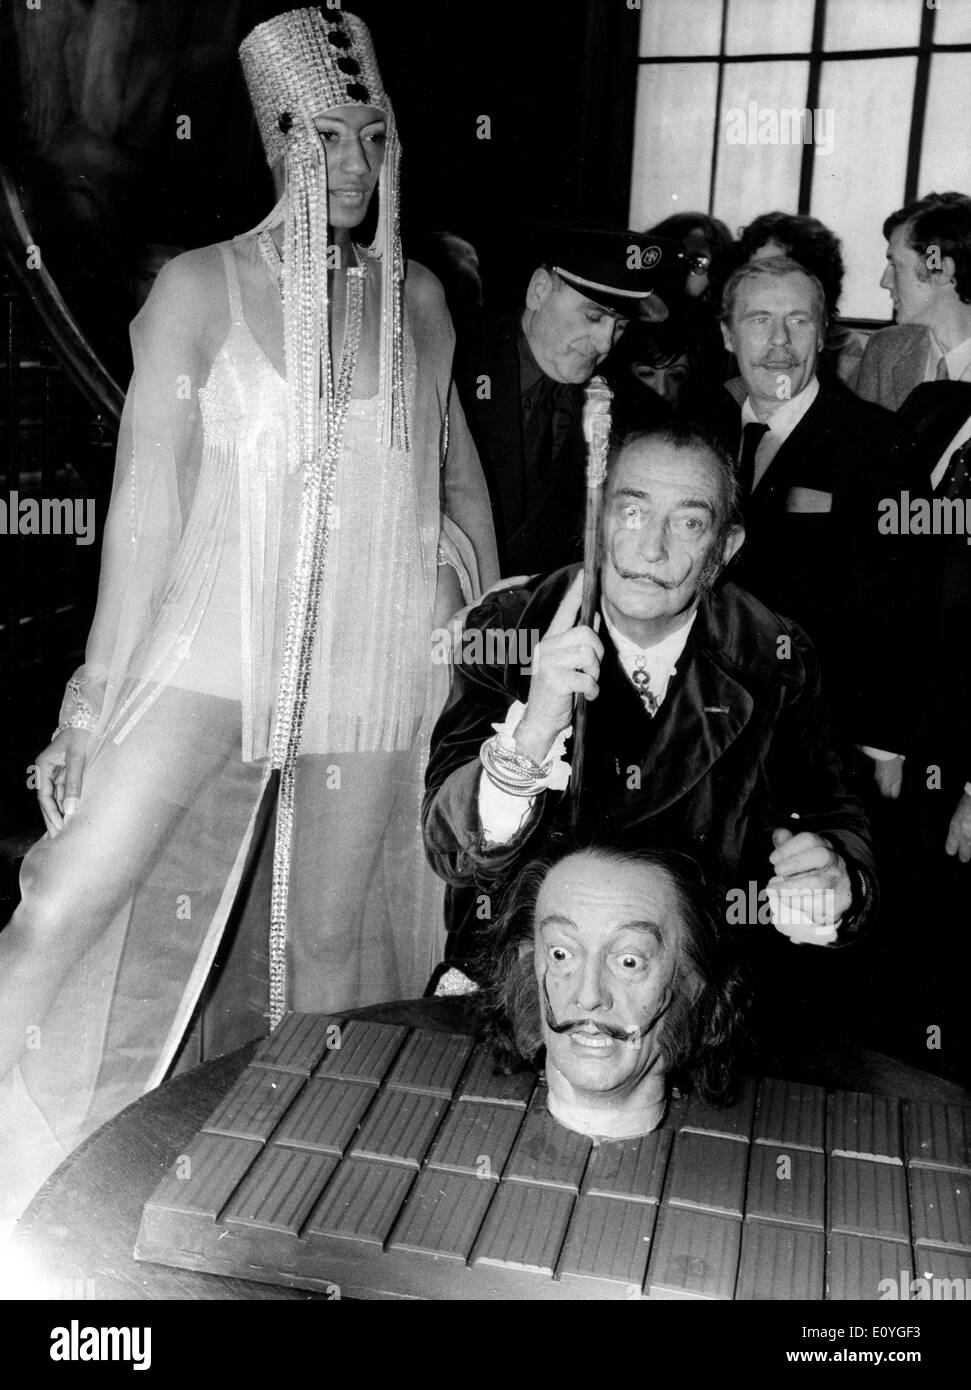 Artist Salvador Dali at an art conference - Stock Image